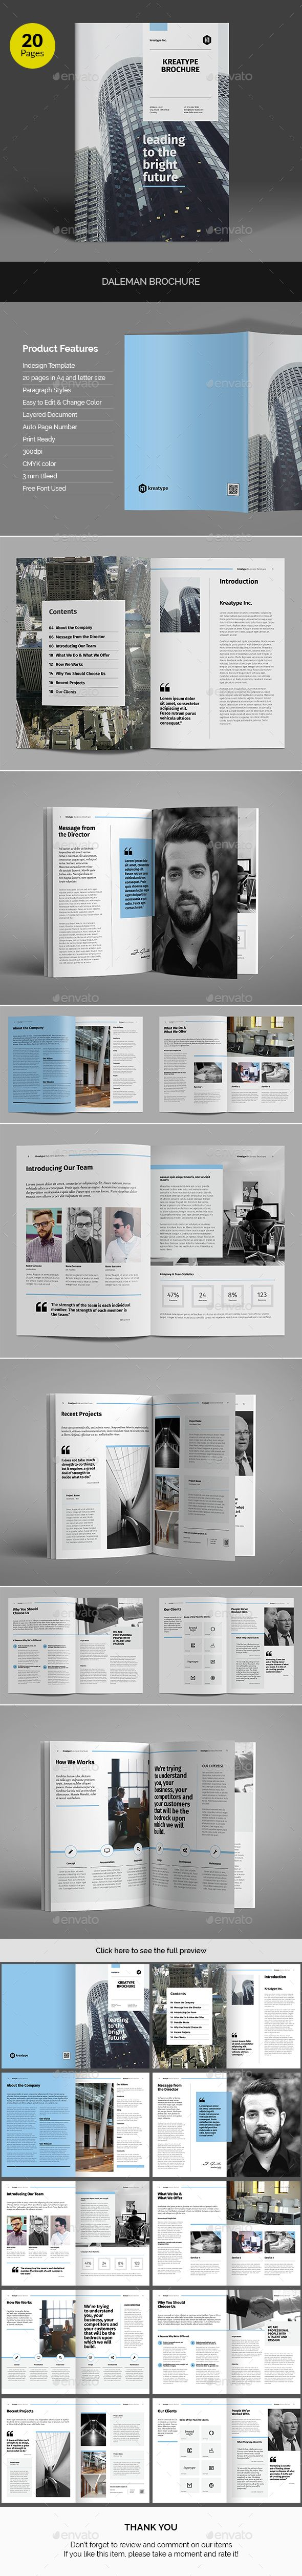 Kreatype Company Brochure Template InDesign INDD. Download here: https://graphicriver.net/item/kreatype-company-brochure/17328697?ref=ksioks